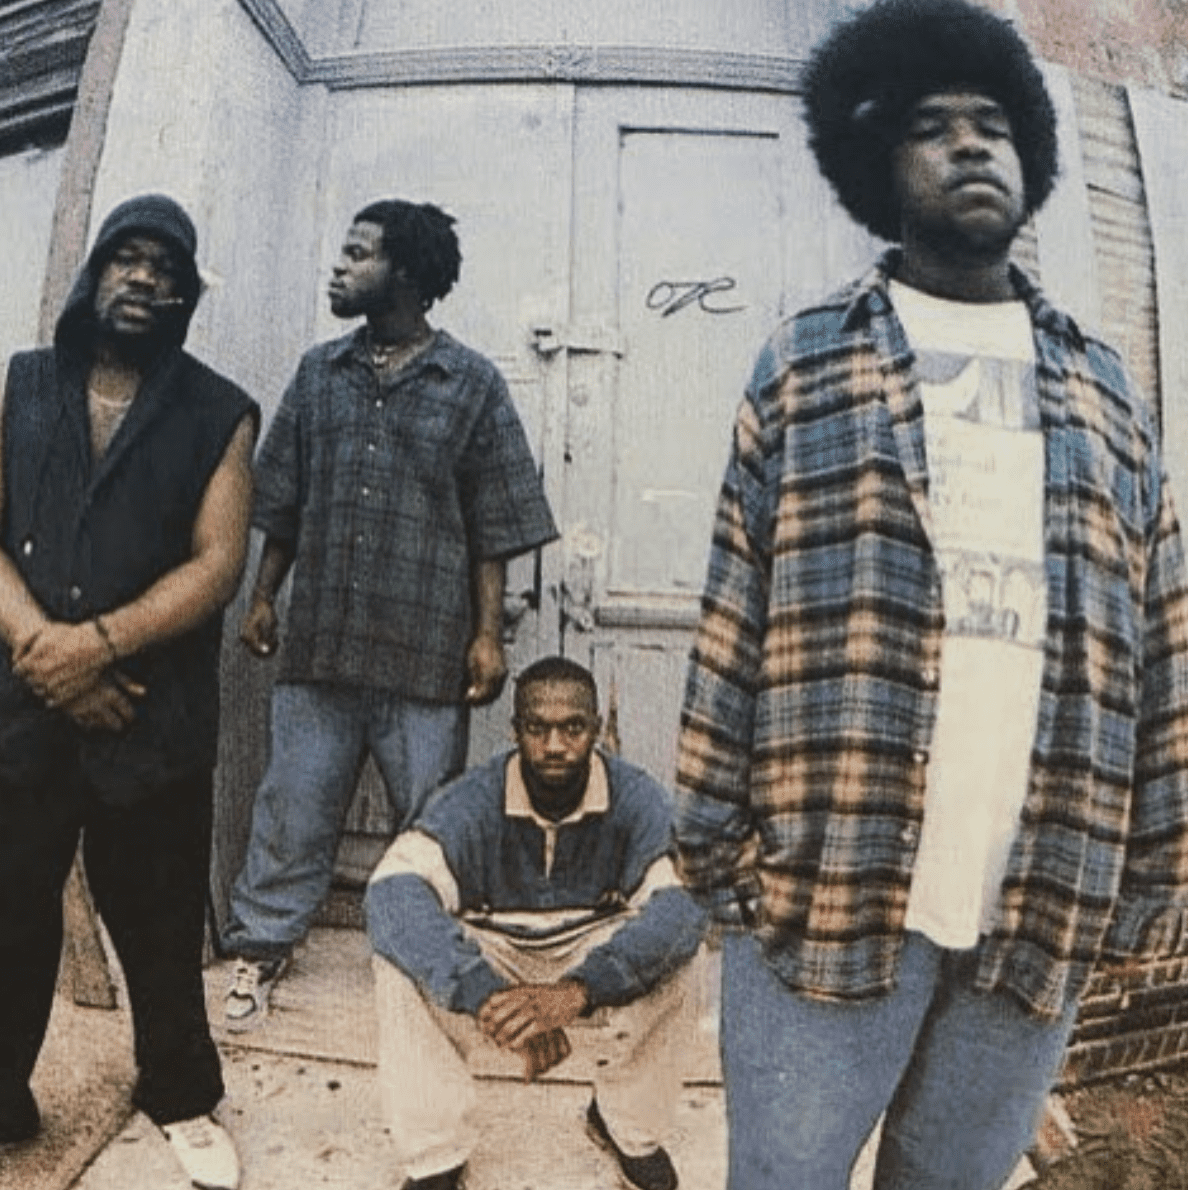 Members of The Roots, Questlove, Black Thought, and Malik B. stand outside a building | Source: instagram.com/questlove